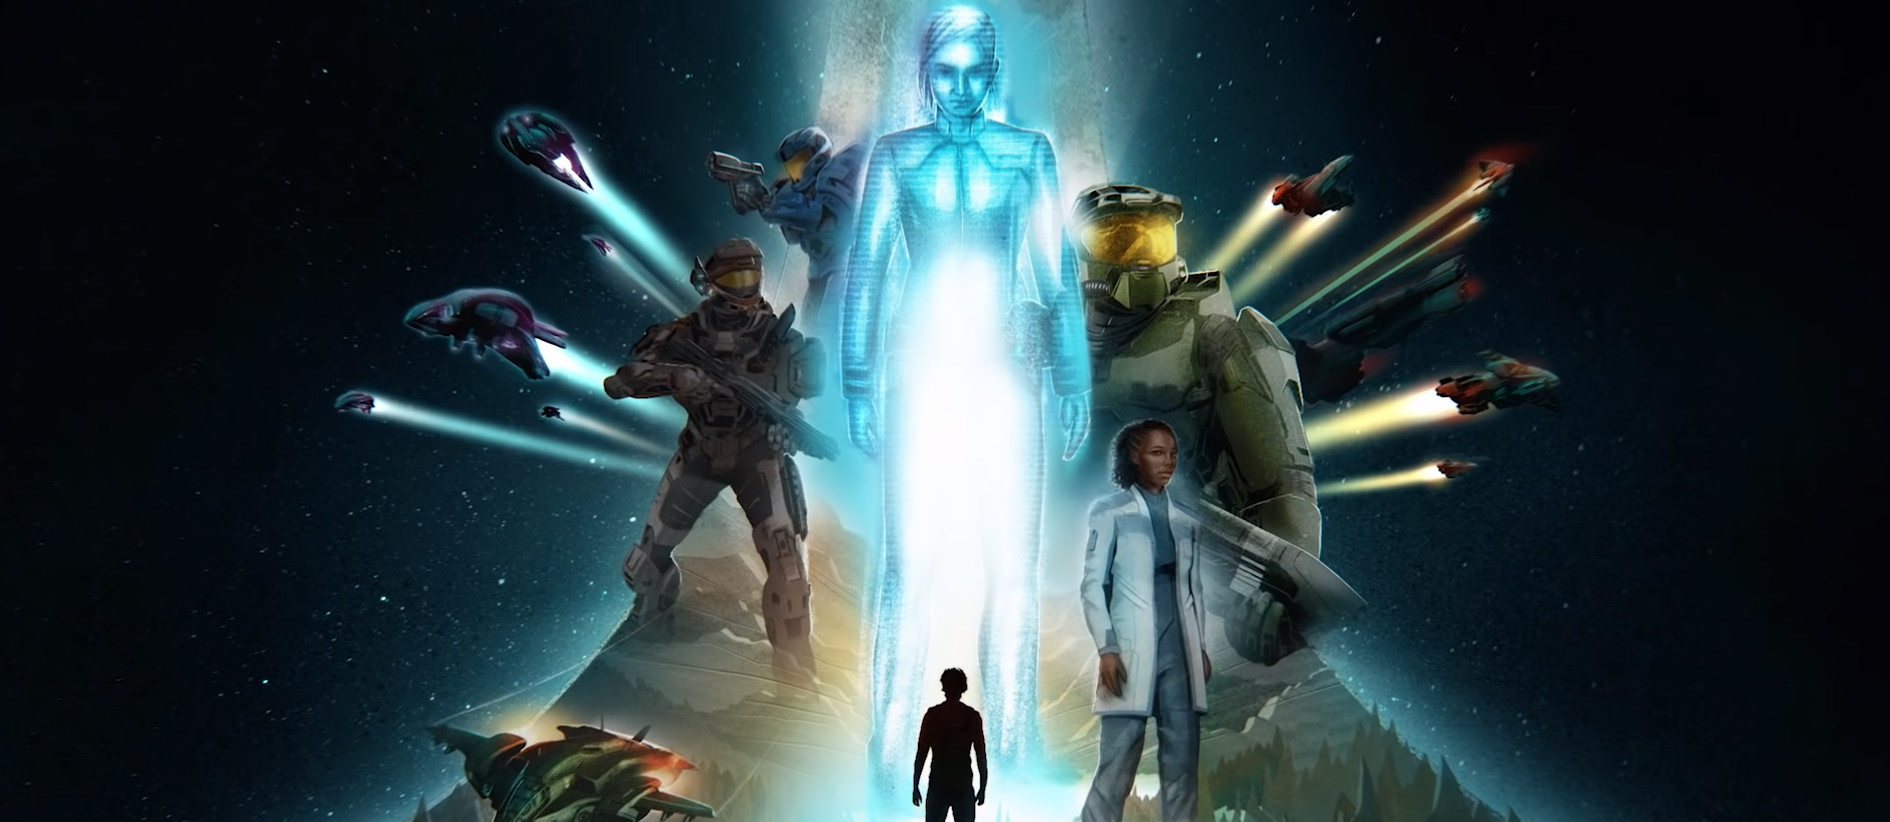 HALO OUTPOST DISCOVERY - CHICAGO - Explore Halo. Become a hero. The Halo universe comes to life this summer.